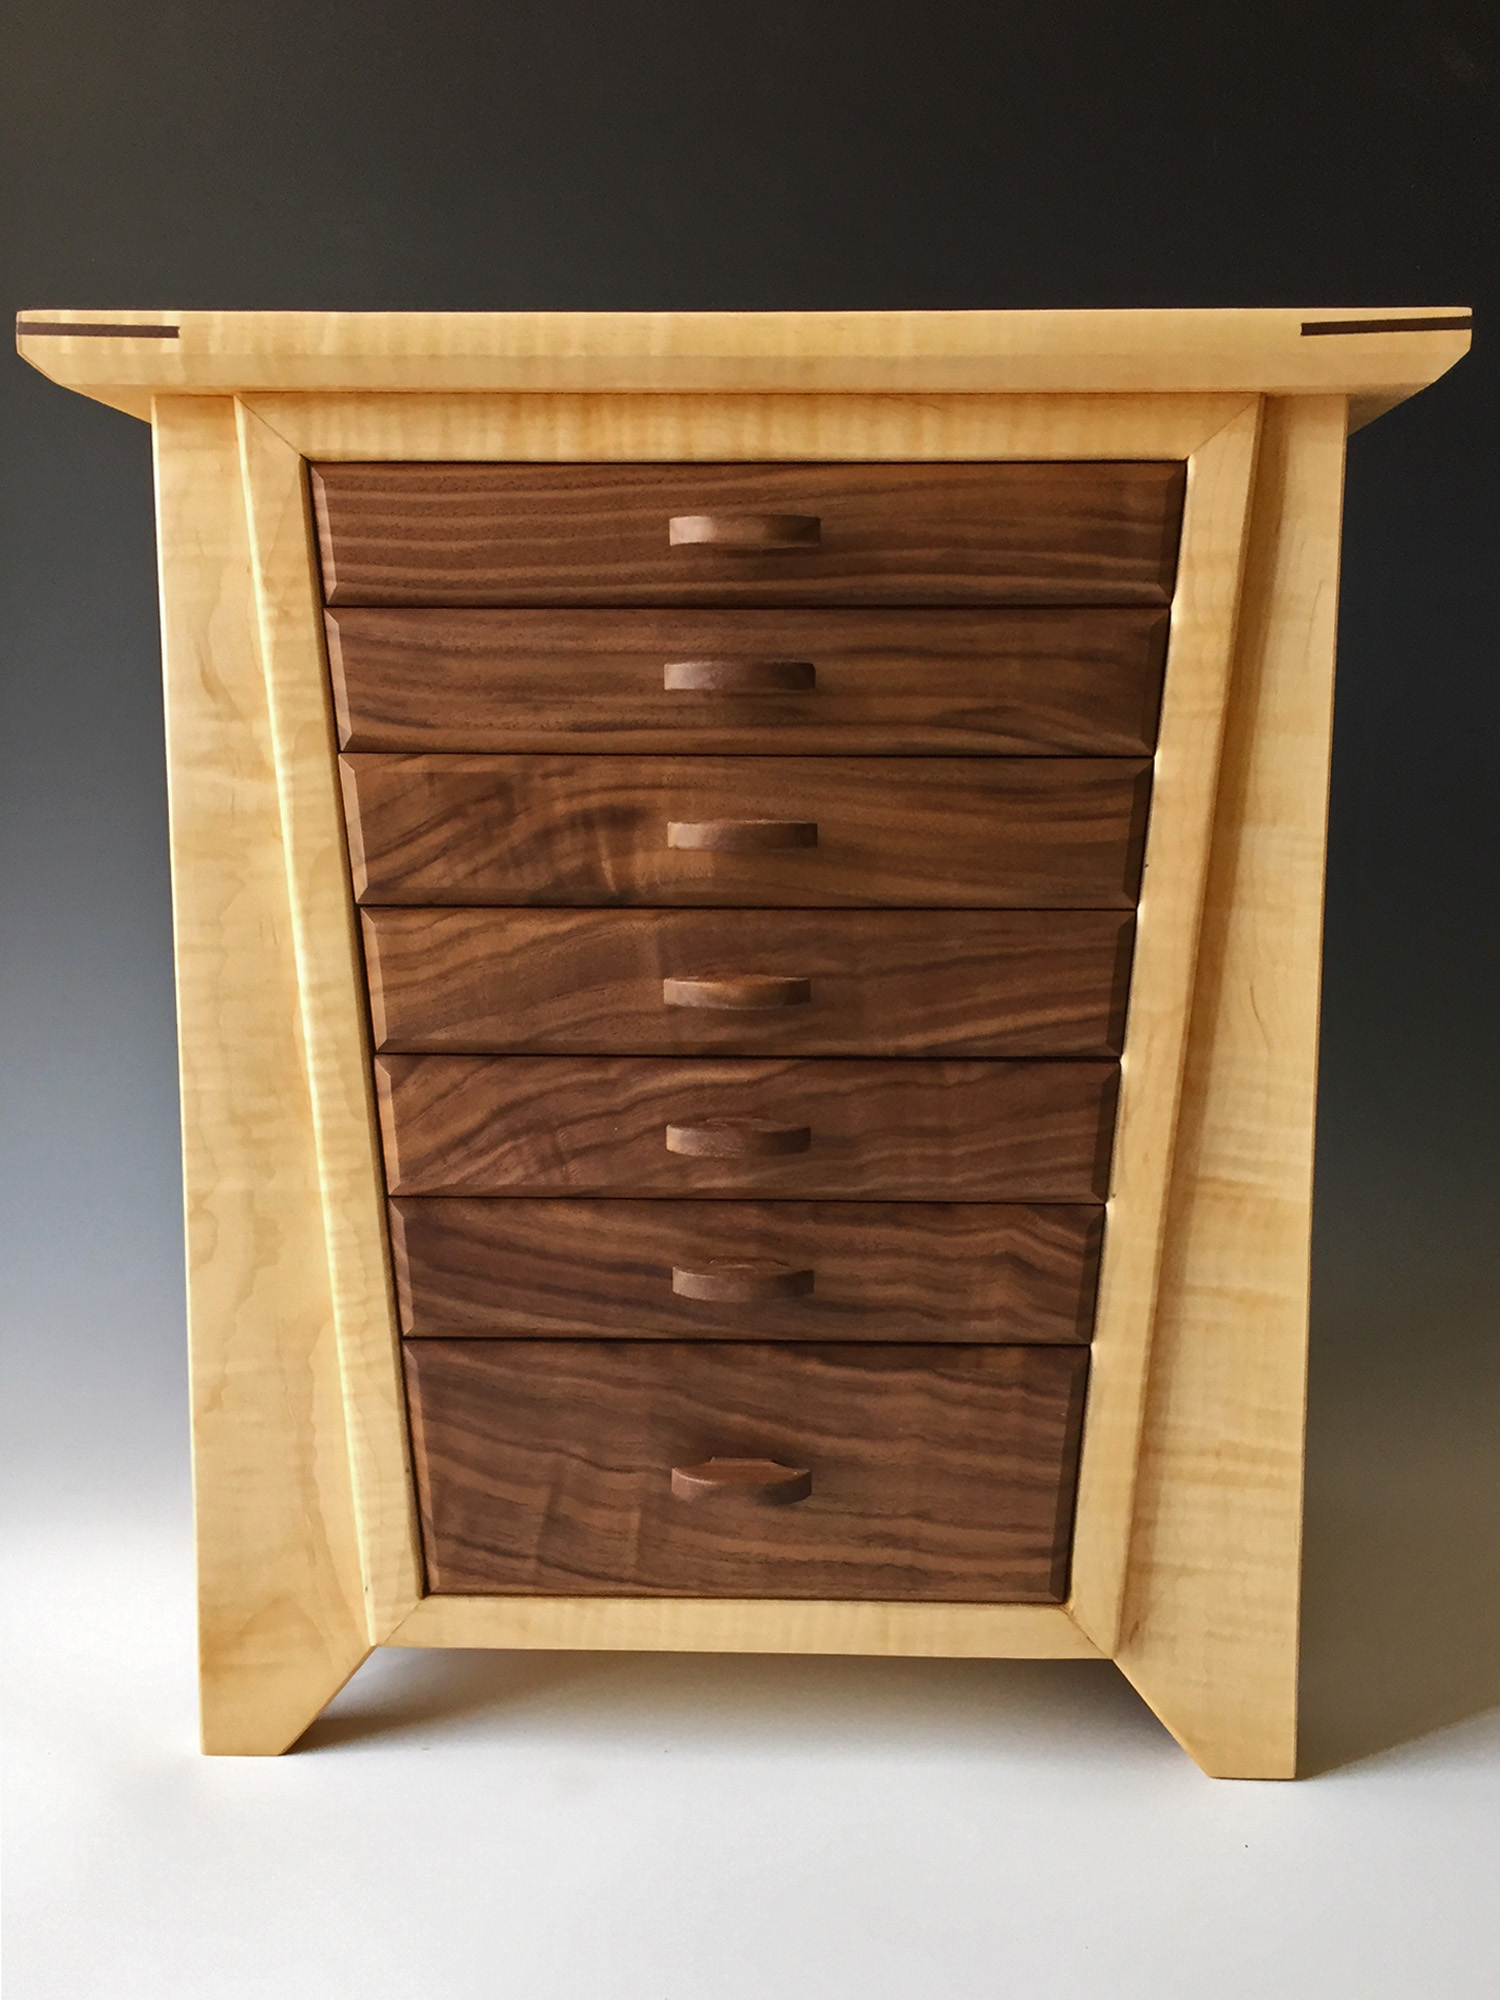 Photo of my large jewelry box, the Angle, made of curly maple with black walnut drawers.